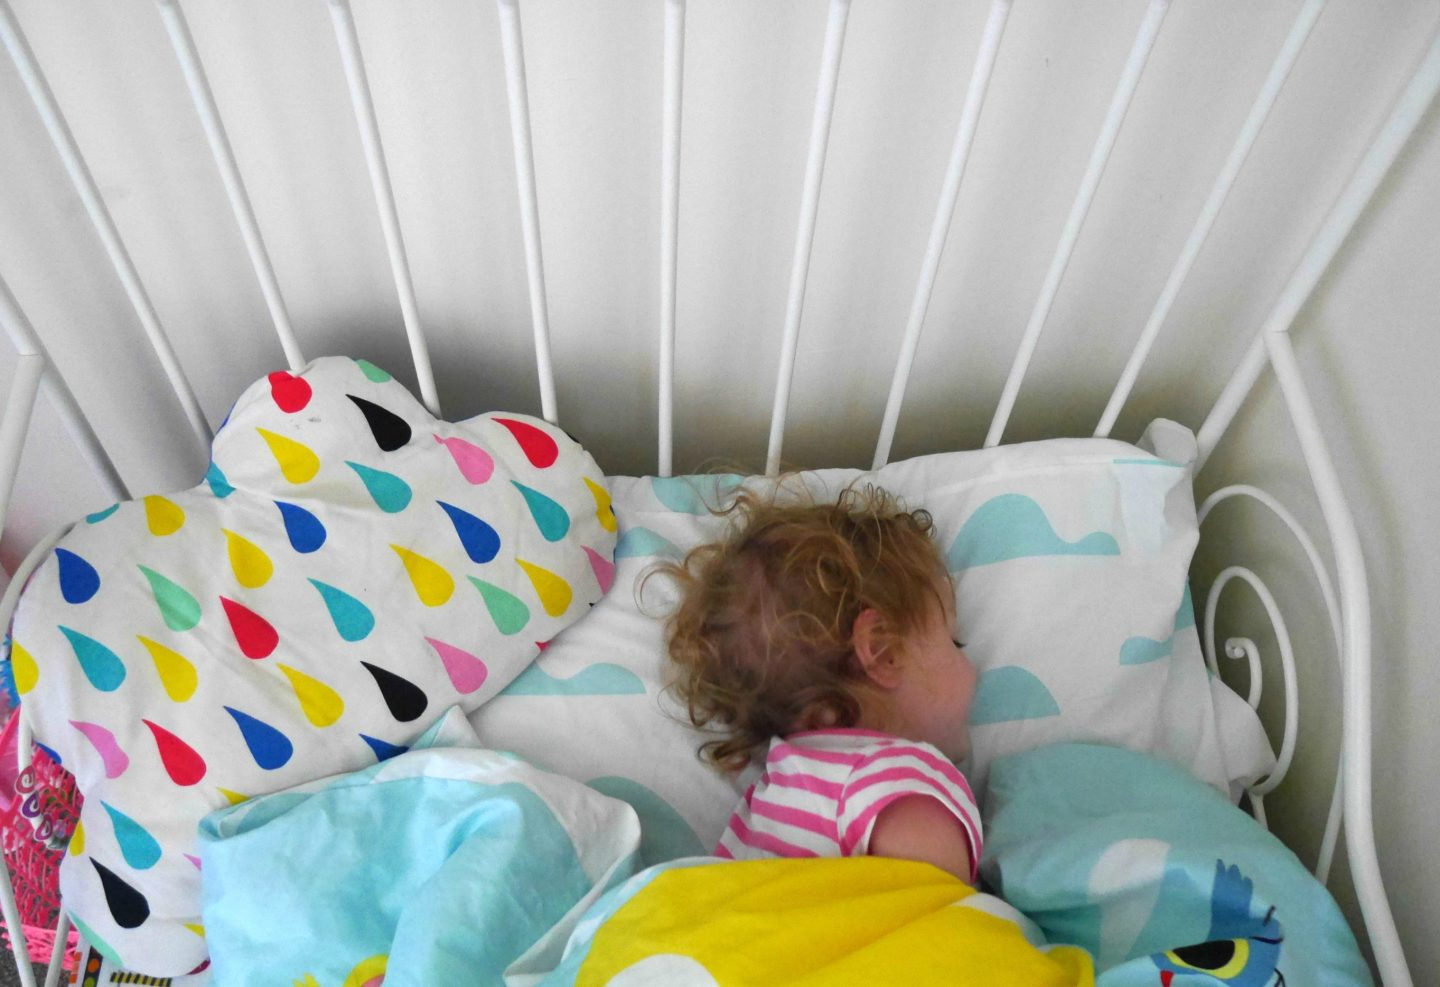 When did your child drop the daytime nap?